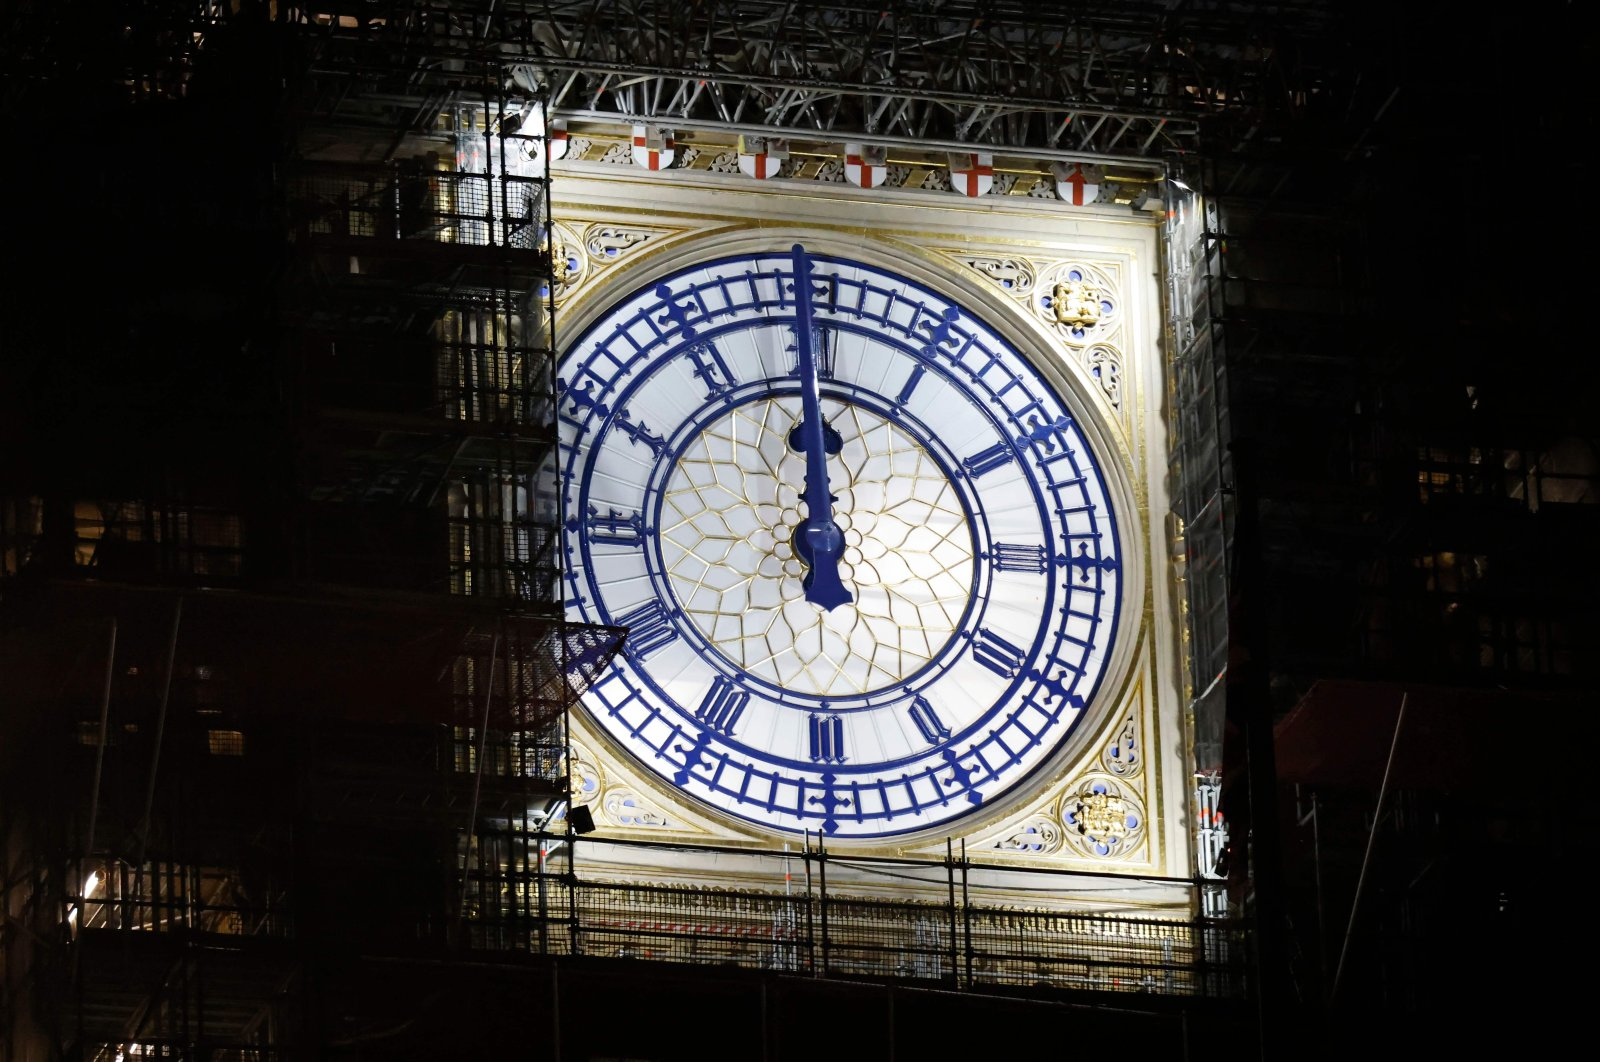 The clock-face on the Elizabeth Tower, known as Big Ben, shows midnight early on New Year's Day, Jan. 1, 2021, in London. (AFP Photo)